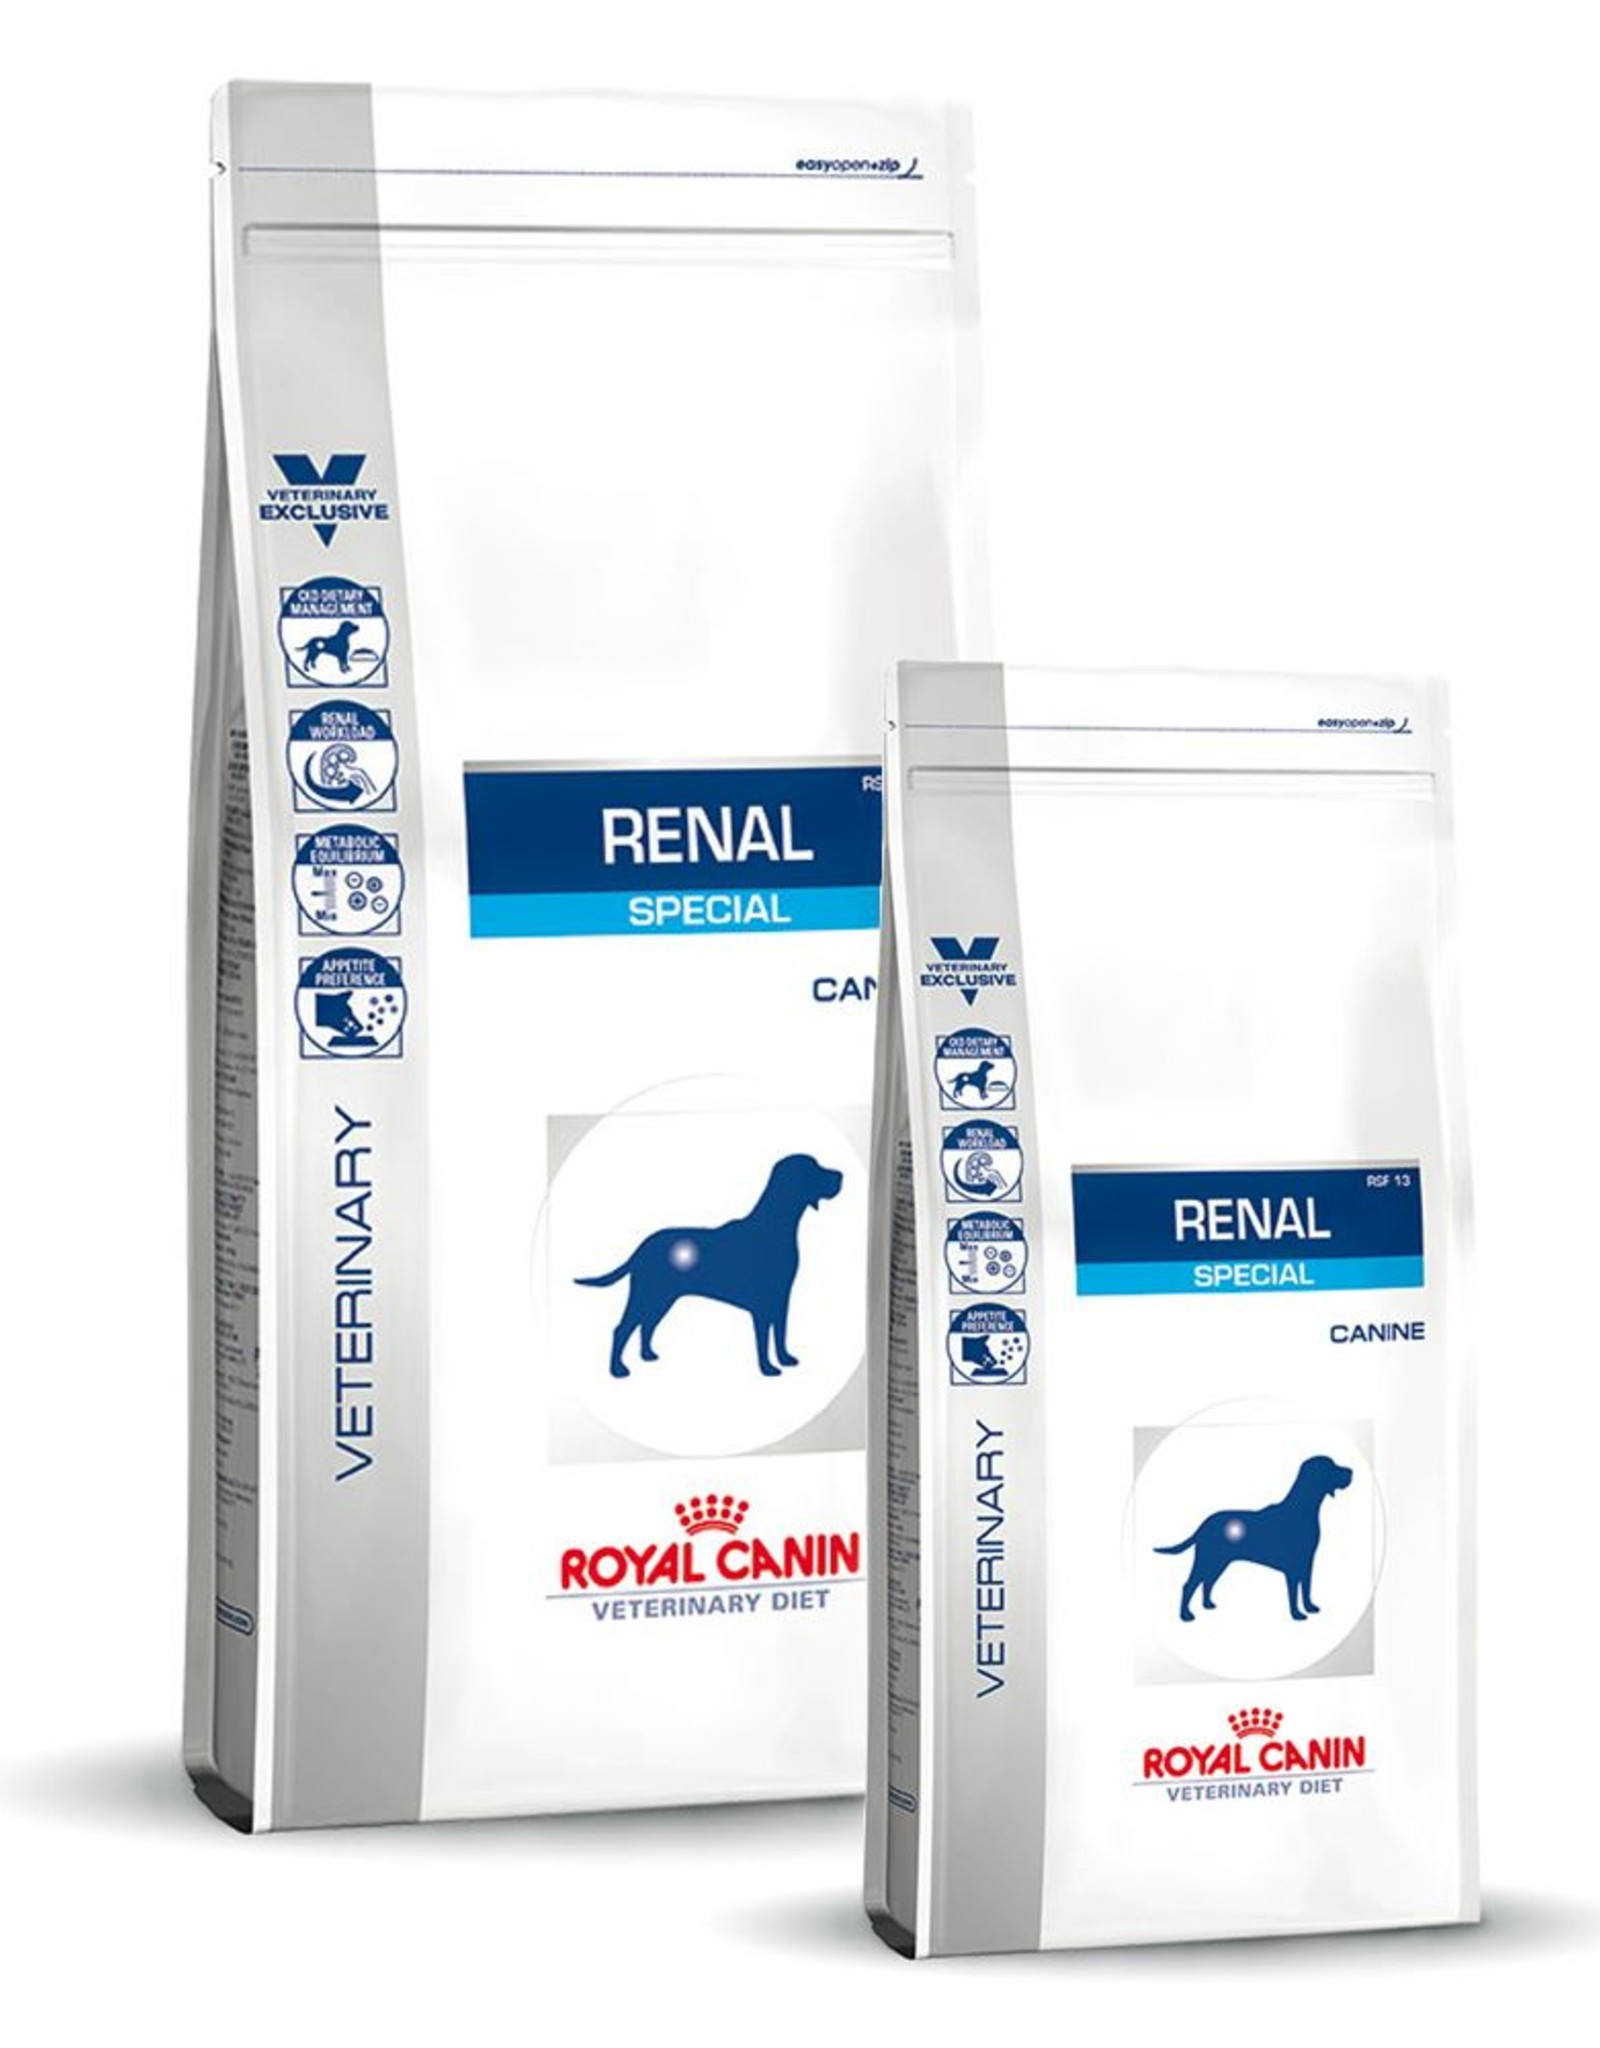 Royal Canin Vdiet Canine Renal Special 2kg